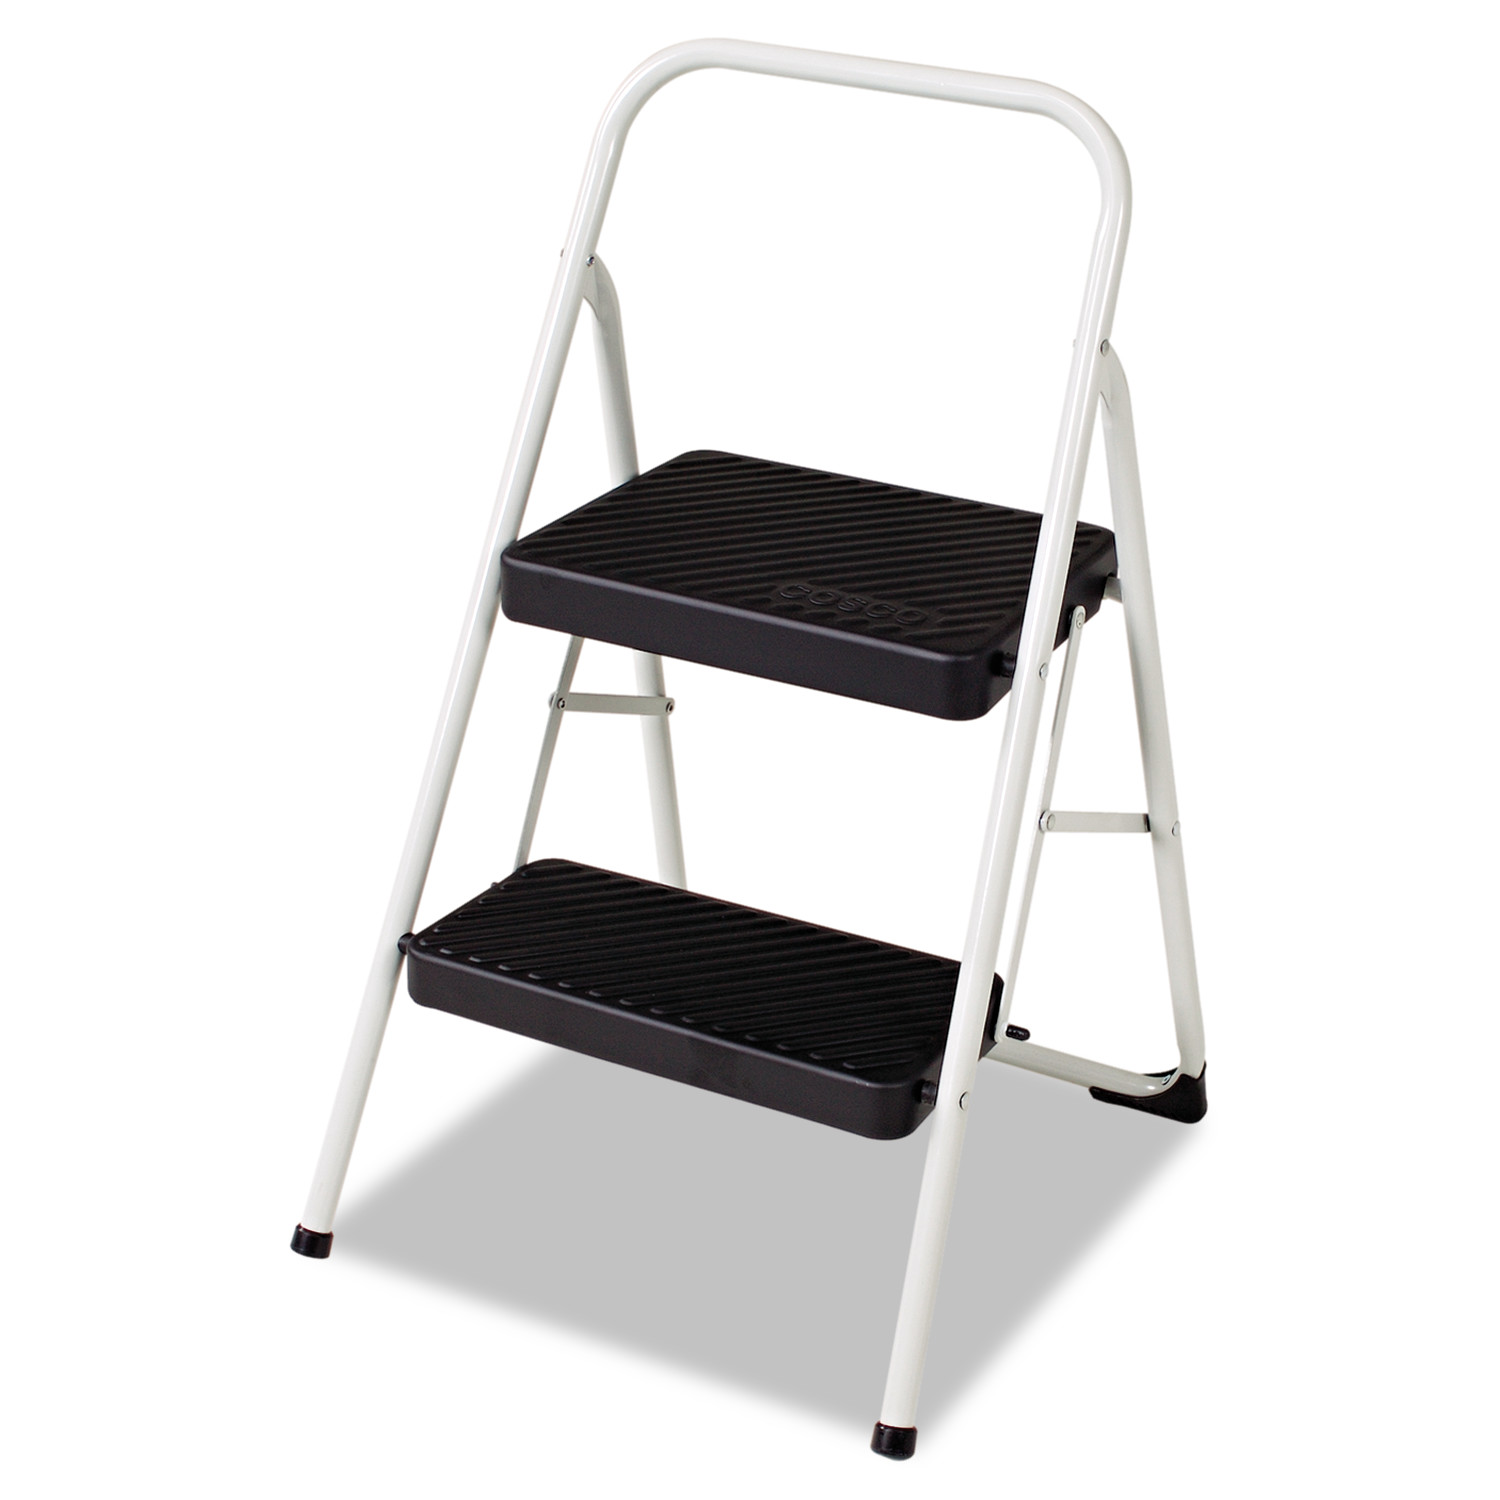 Cosco 2-Step Folding Steel Step Stool 200lbs 17 3/8w x  sc 1 st  Walmart & Cosco 2-Step Folding Steel Step Stool 200lbs 17 3/8w x 18d x 28 ... islam-shia.org